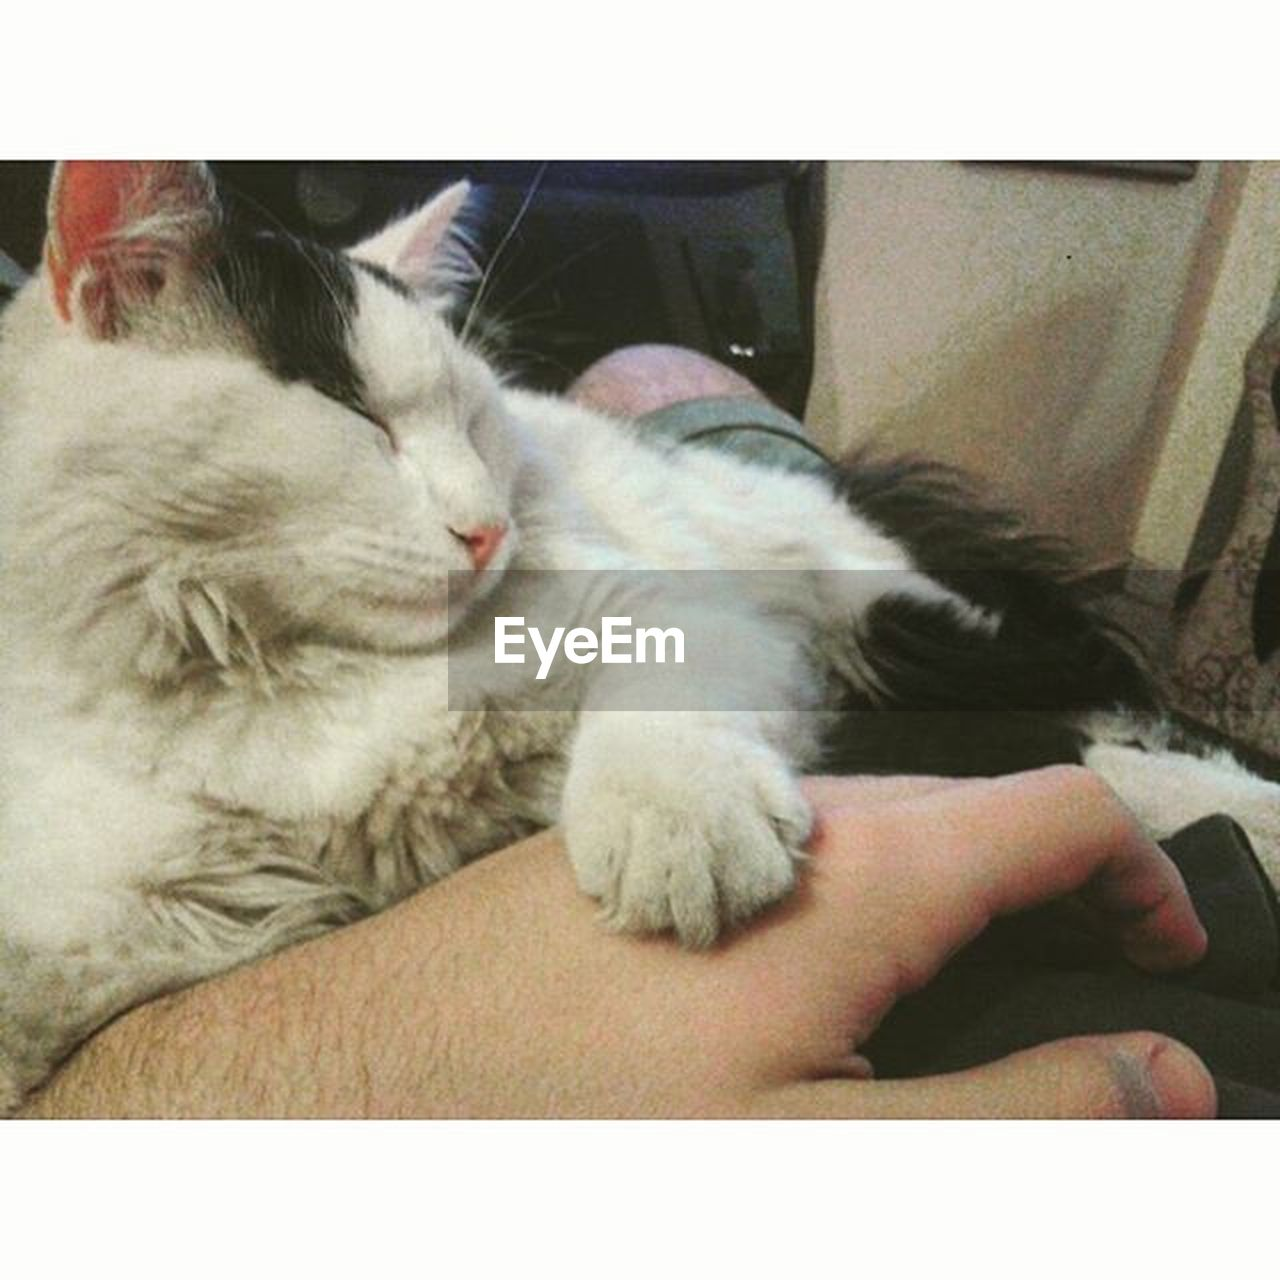 domestic cat, pets, domestic animals, animal themes, one animal, mammal, cat, feline, indoors, sleeping, relaxation, lying down, whisker, one person, real people, cute, human hand, close-up, day, human body part, nature, people